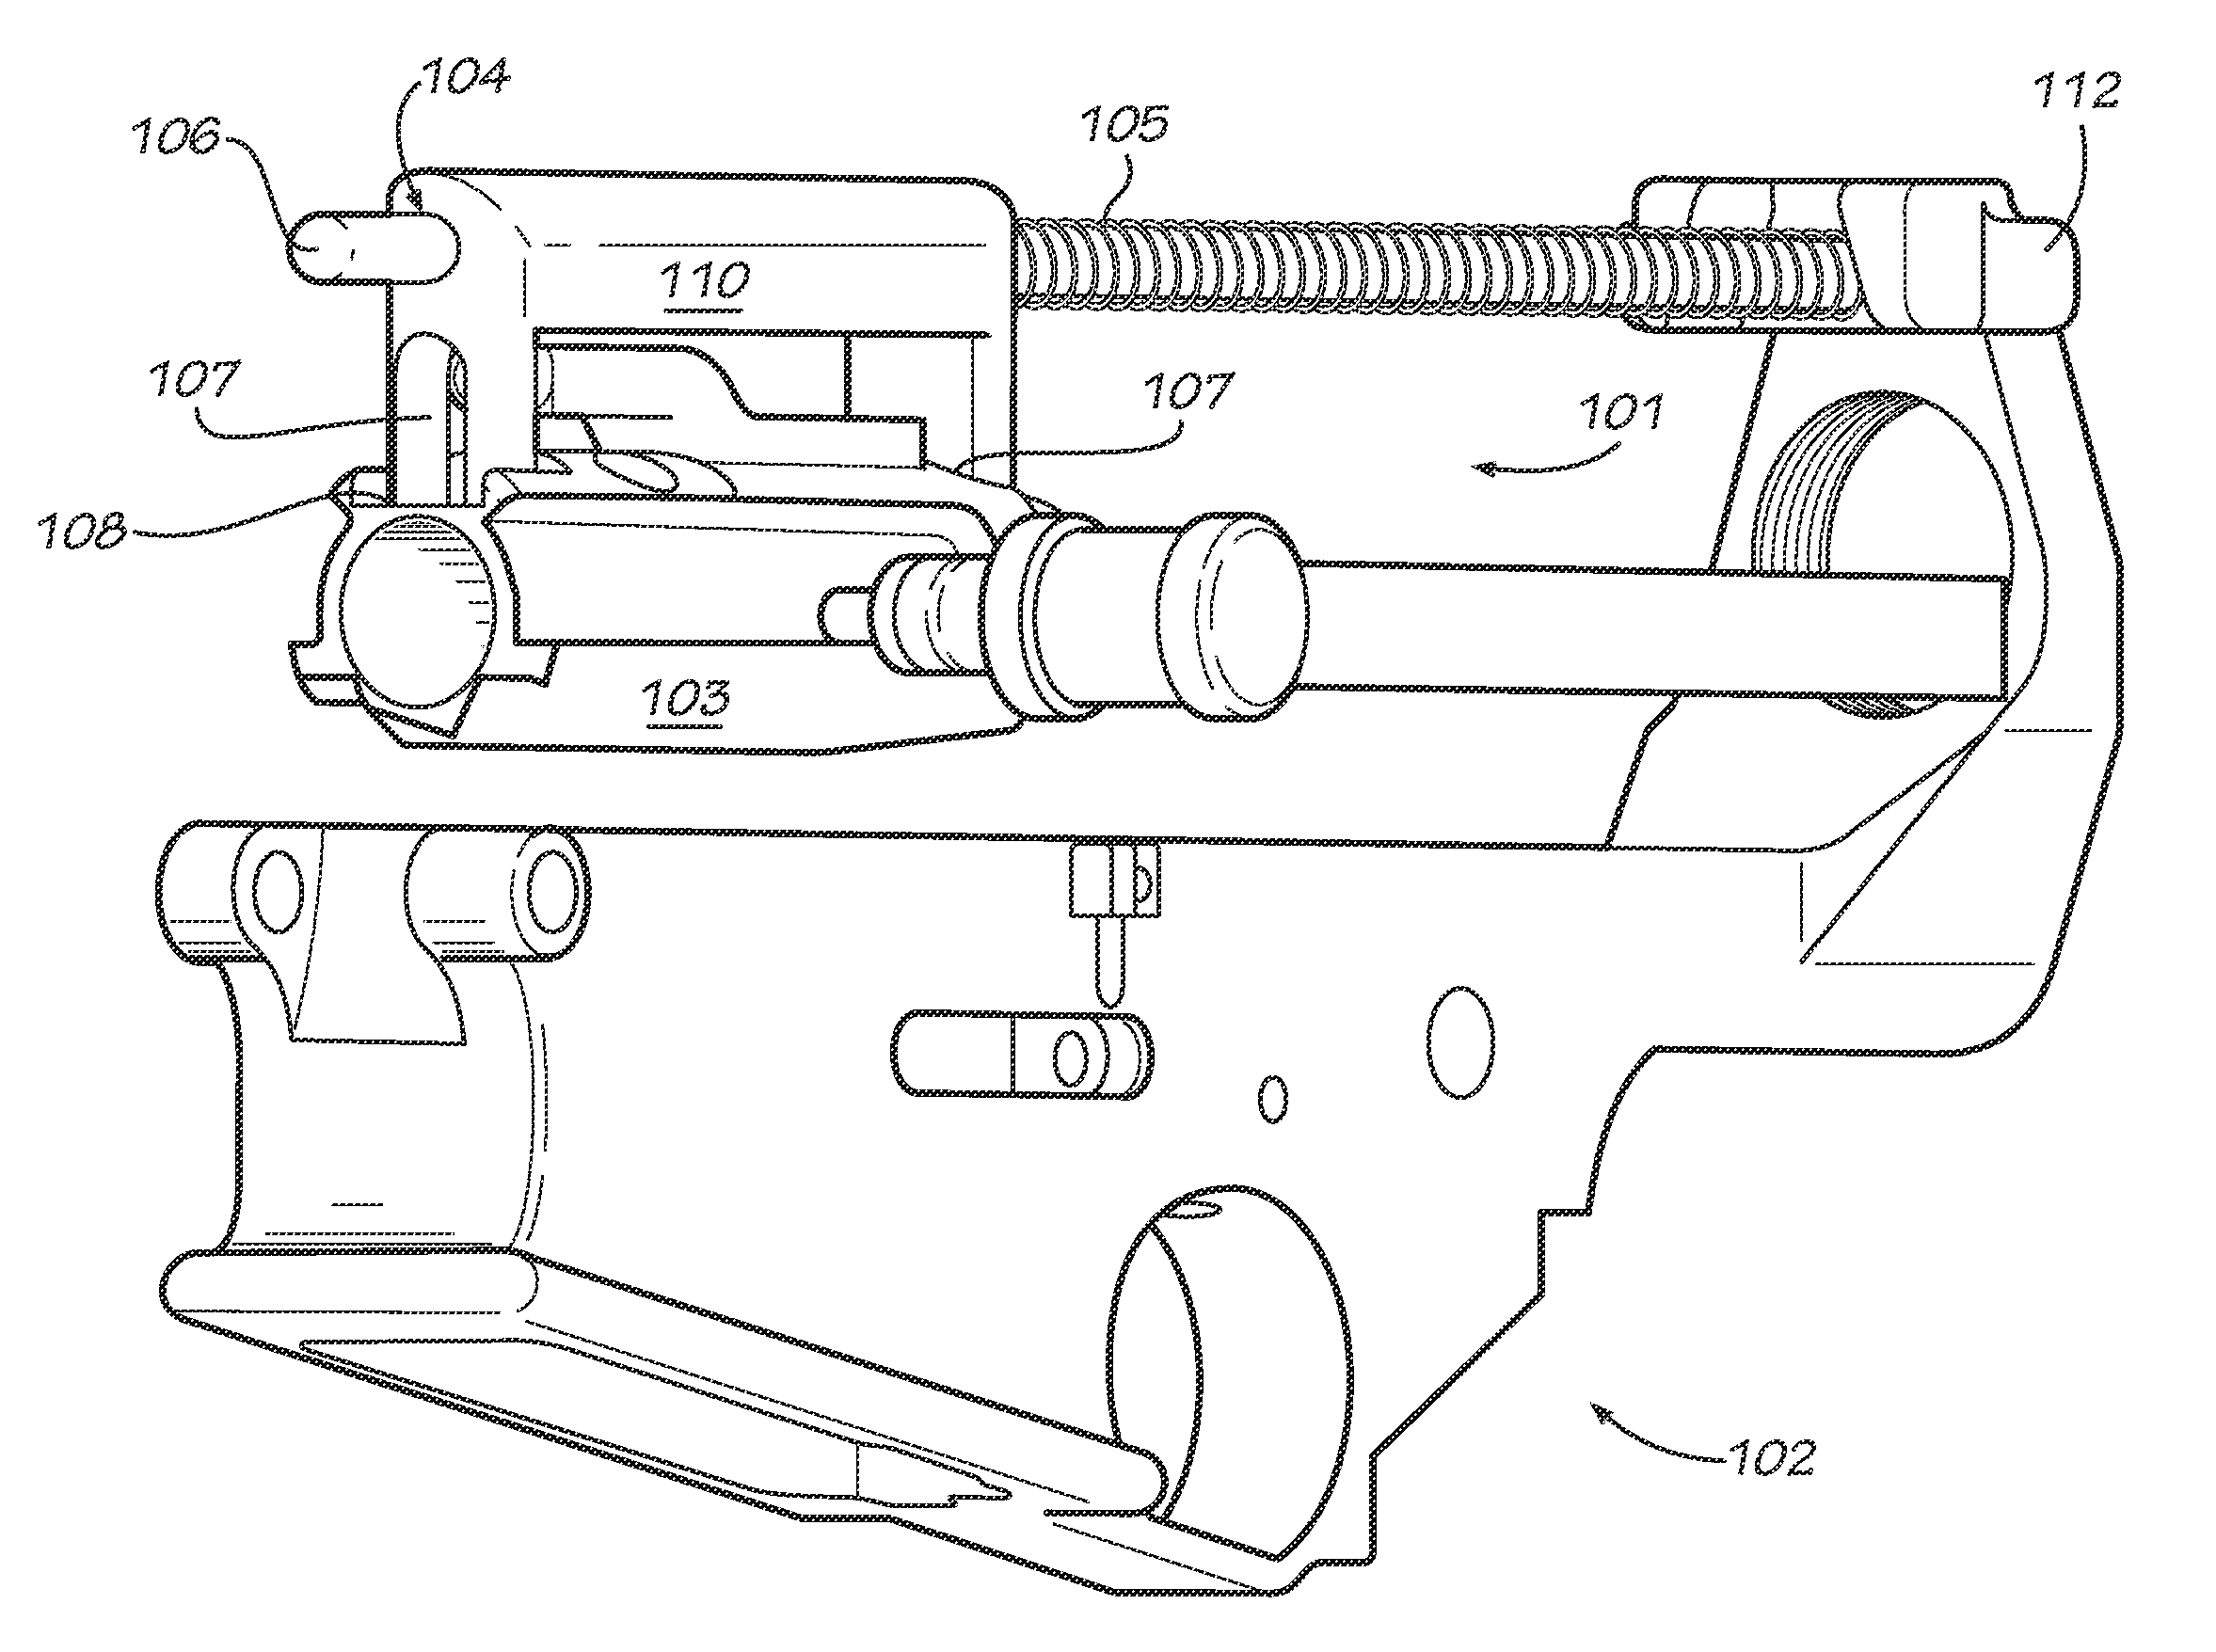 Ar 15 Diagrams Blueprints Free Wiring Diagram For You Schematic M16 Bolt Carrier Blueprint And Fuse Box